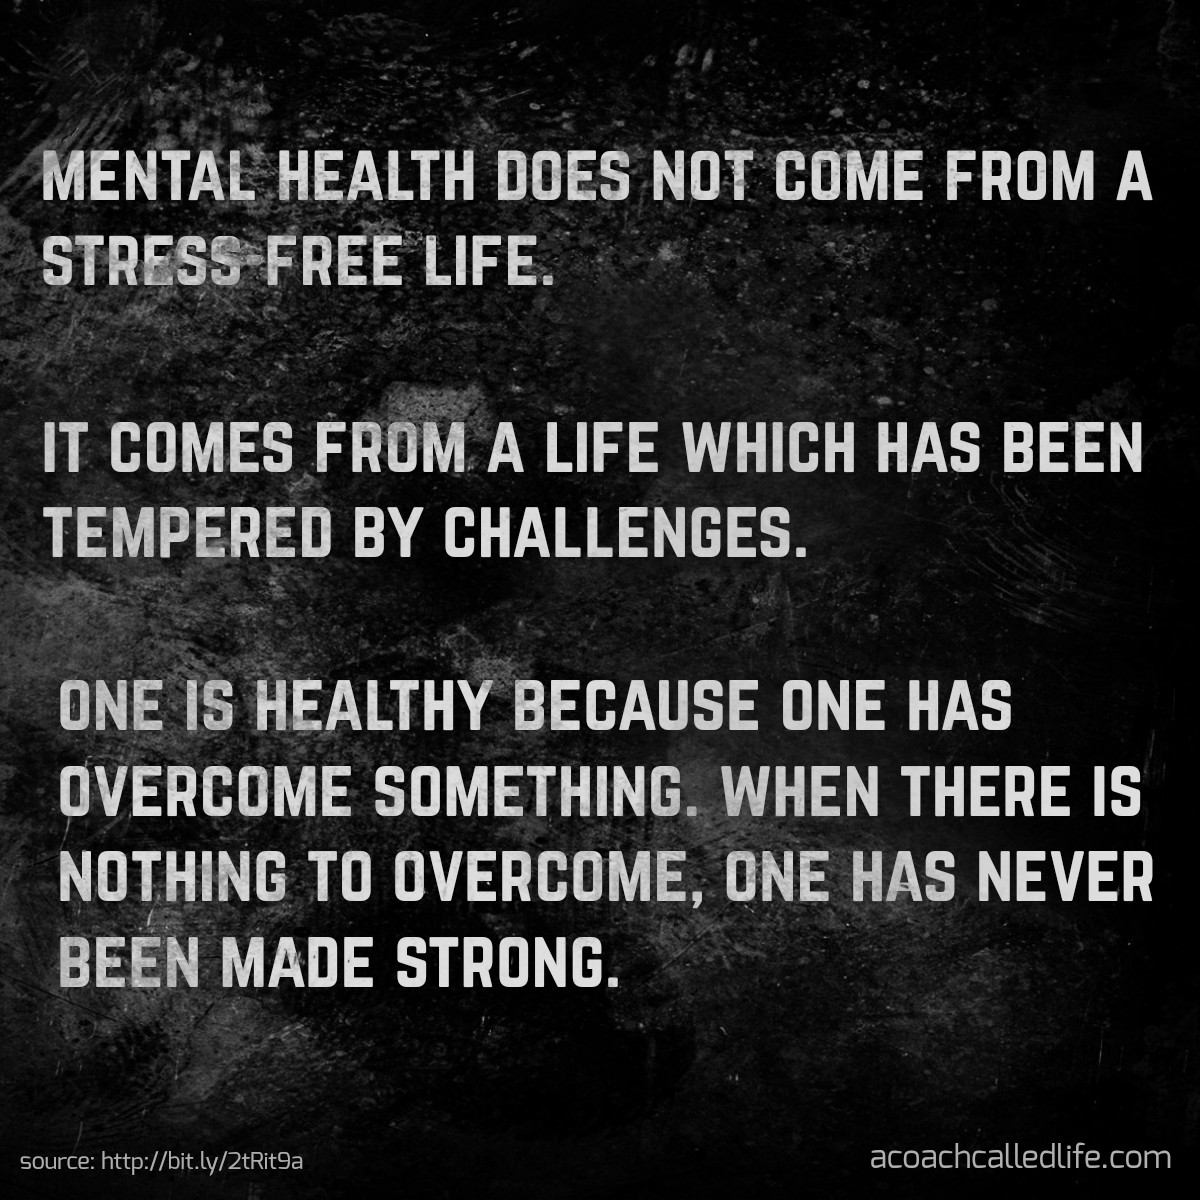 [Image] Mental Health